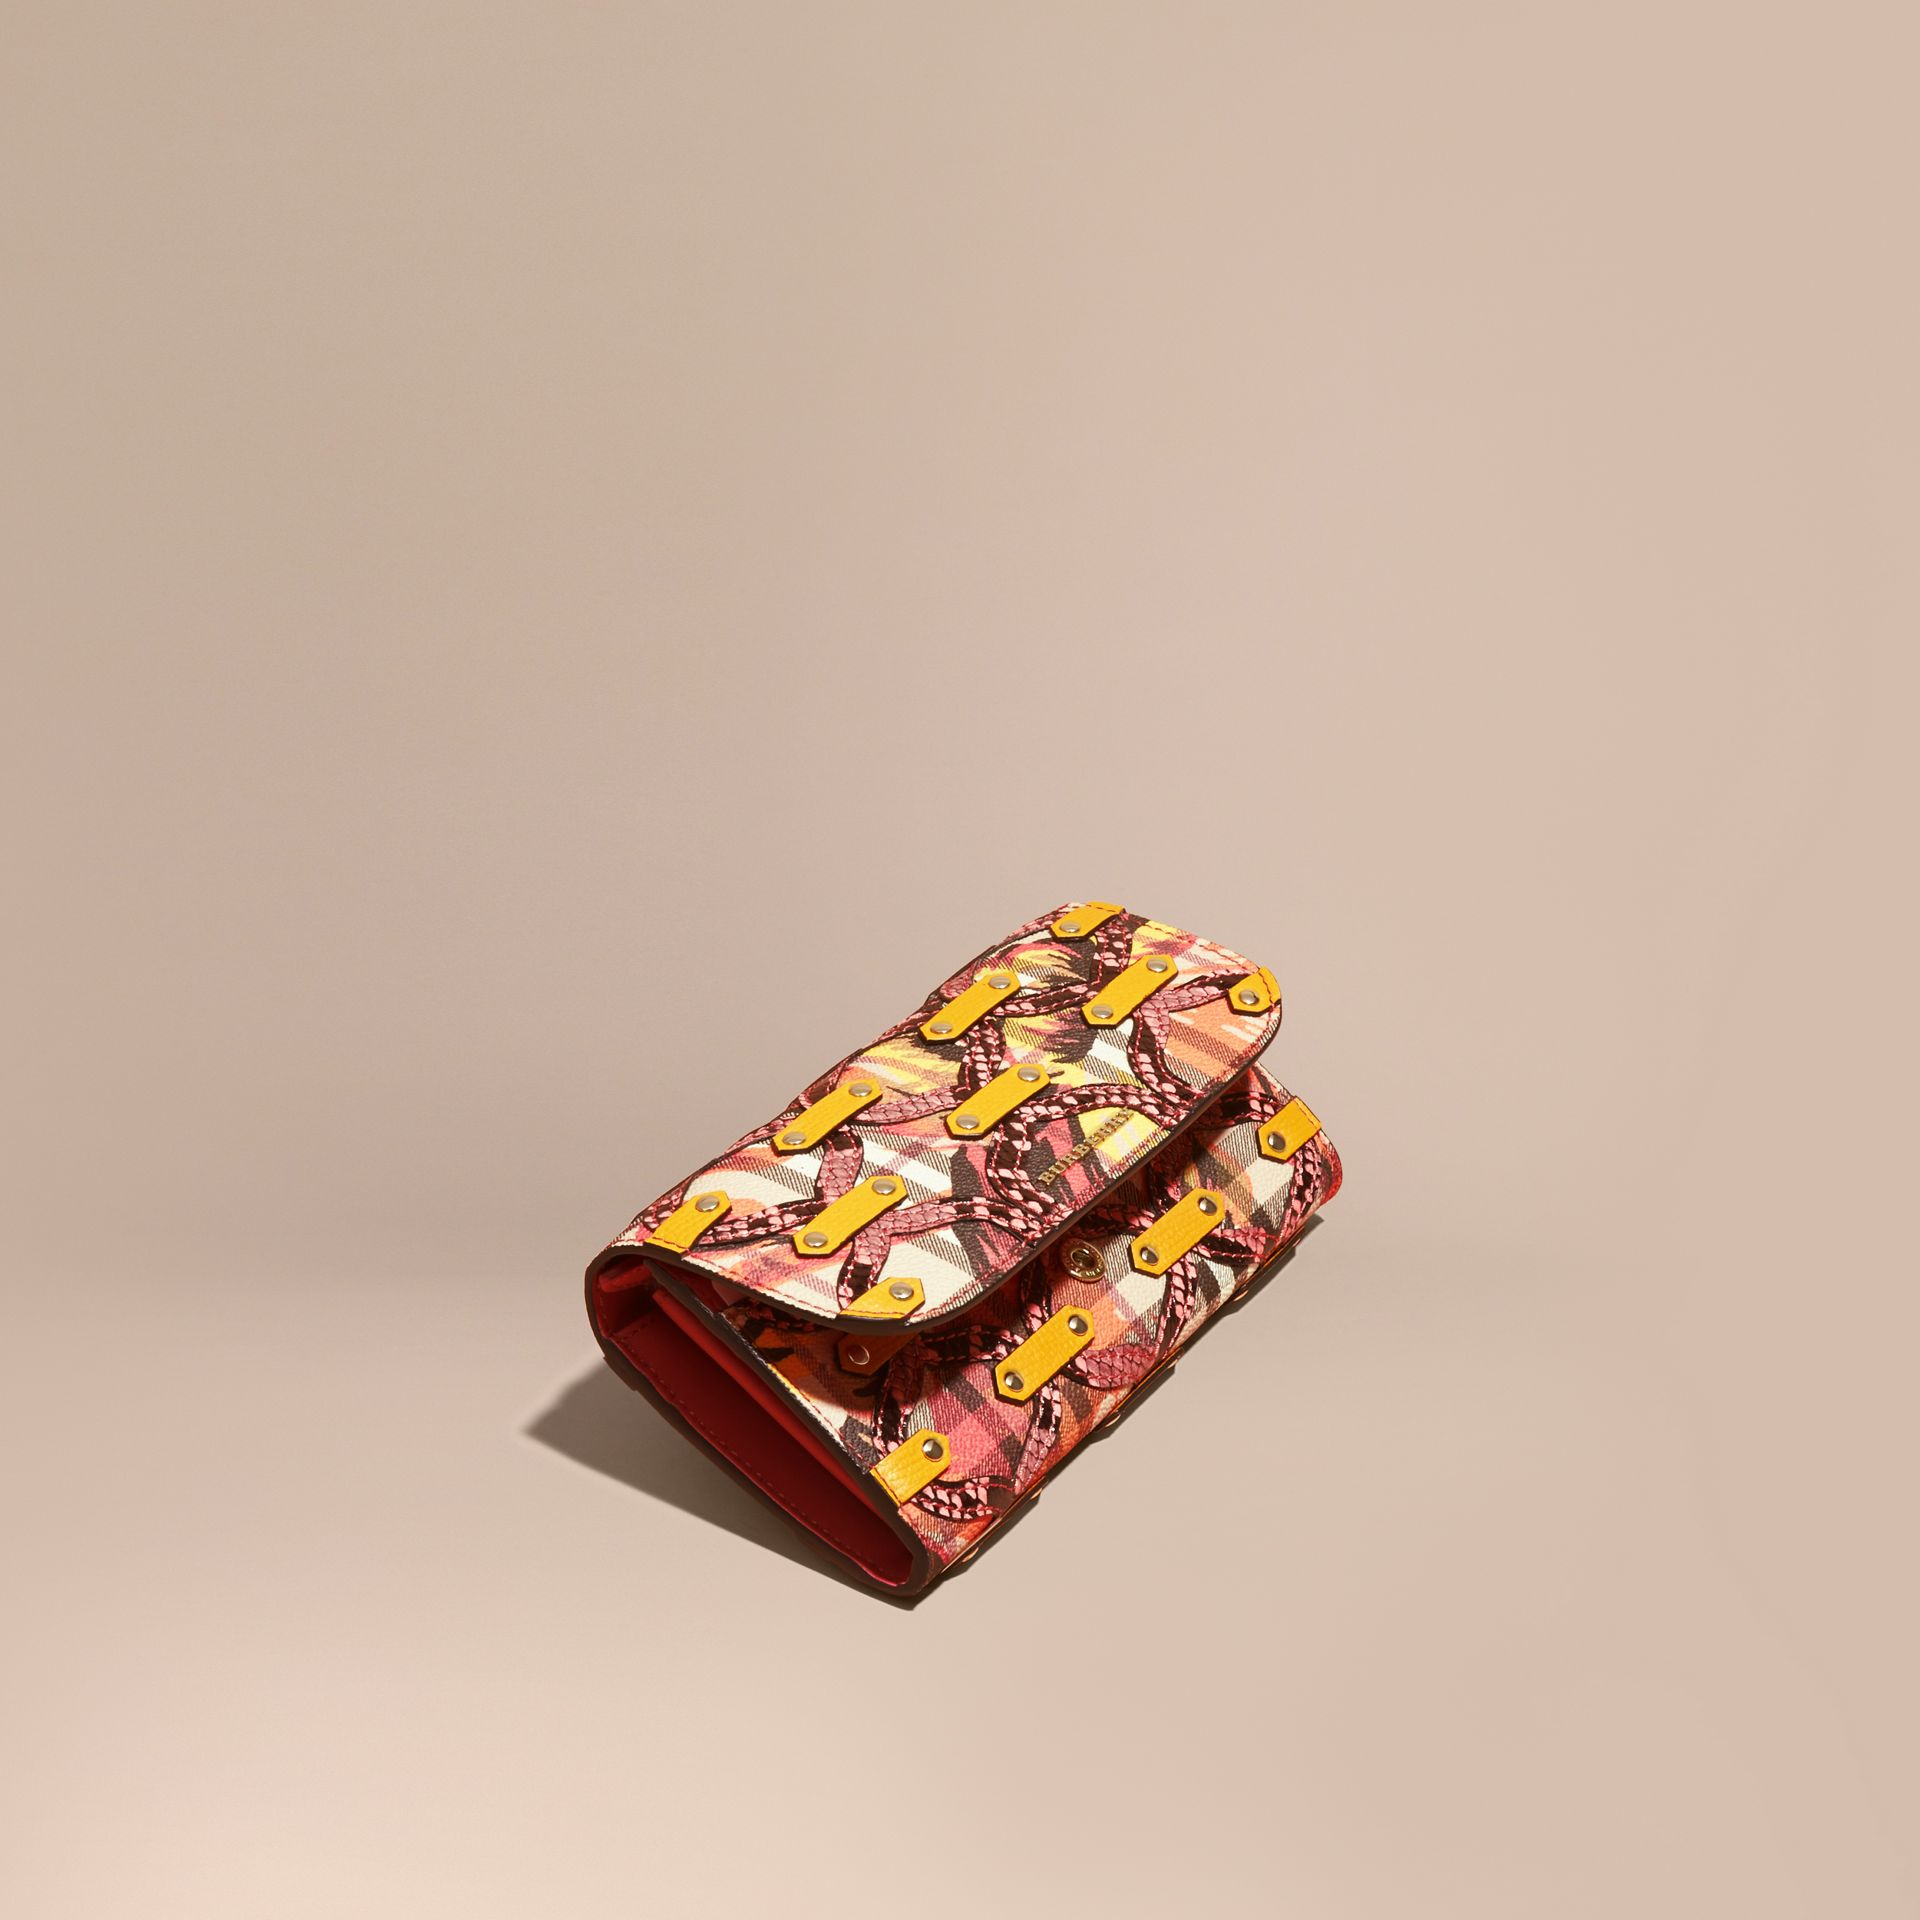 Snakeskin Appliqué Peony Rose Print Haymarket Check Continental Wallet in Larch Yellow - gallery image 1